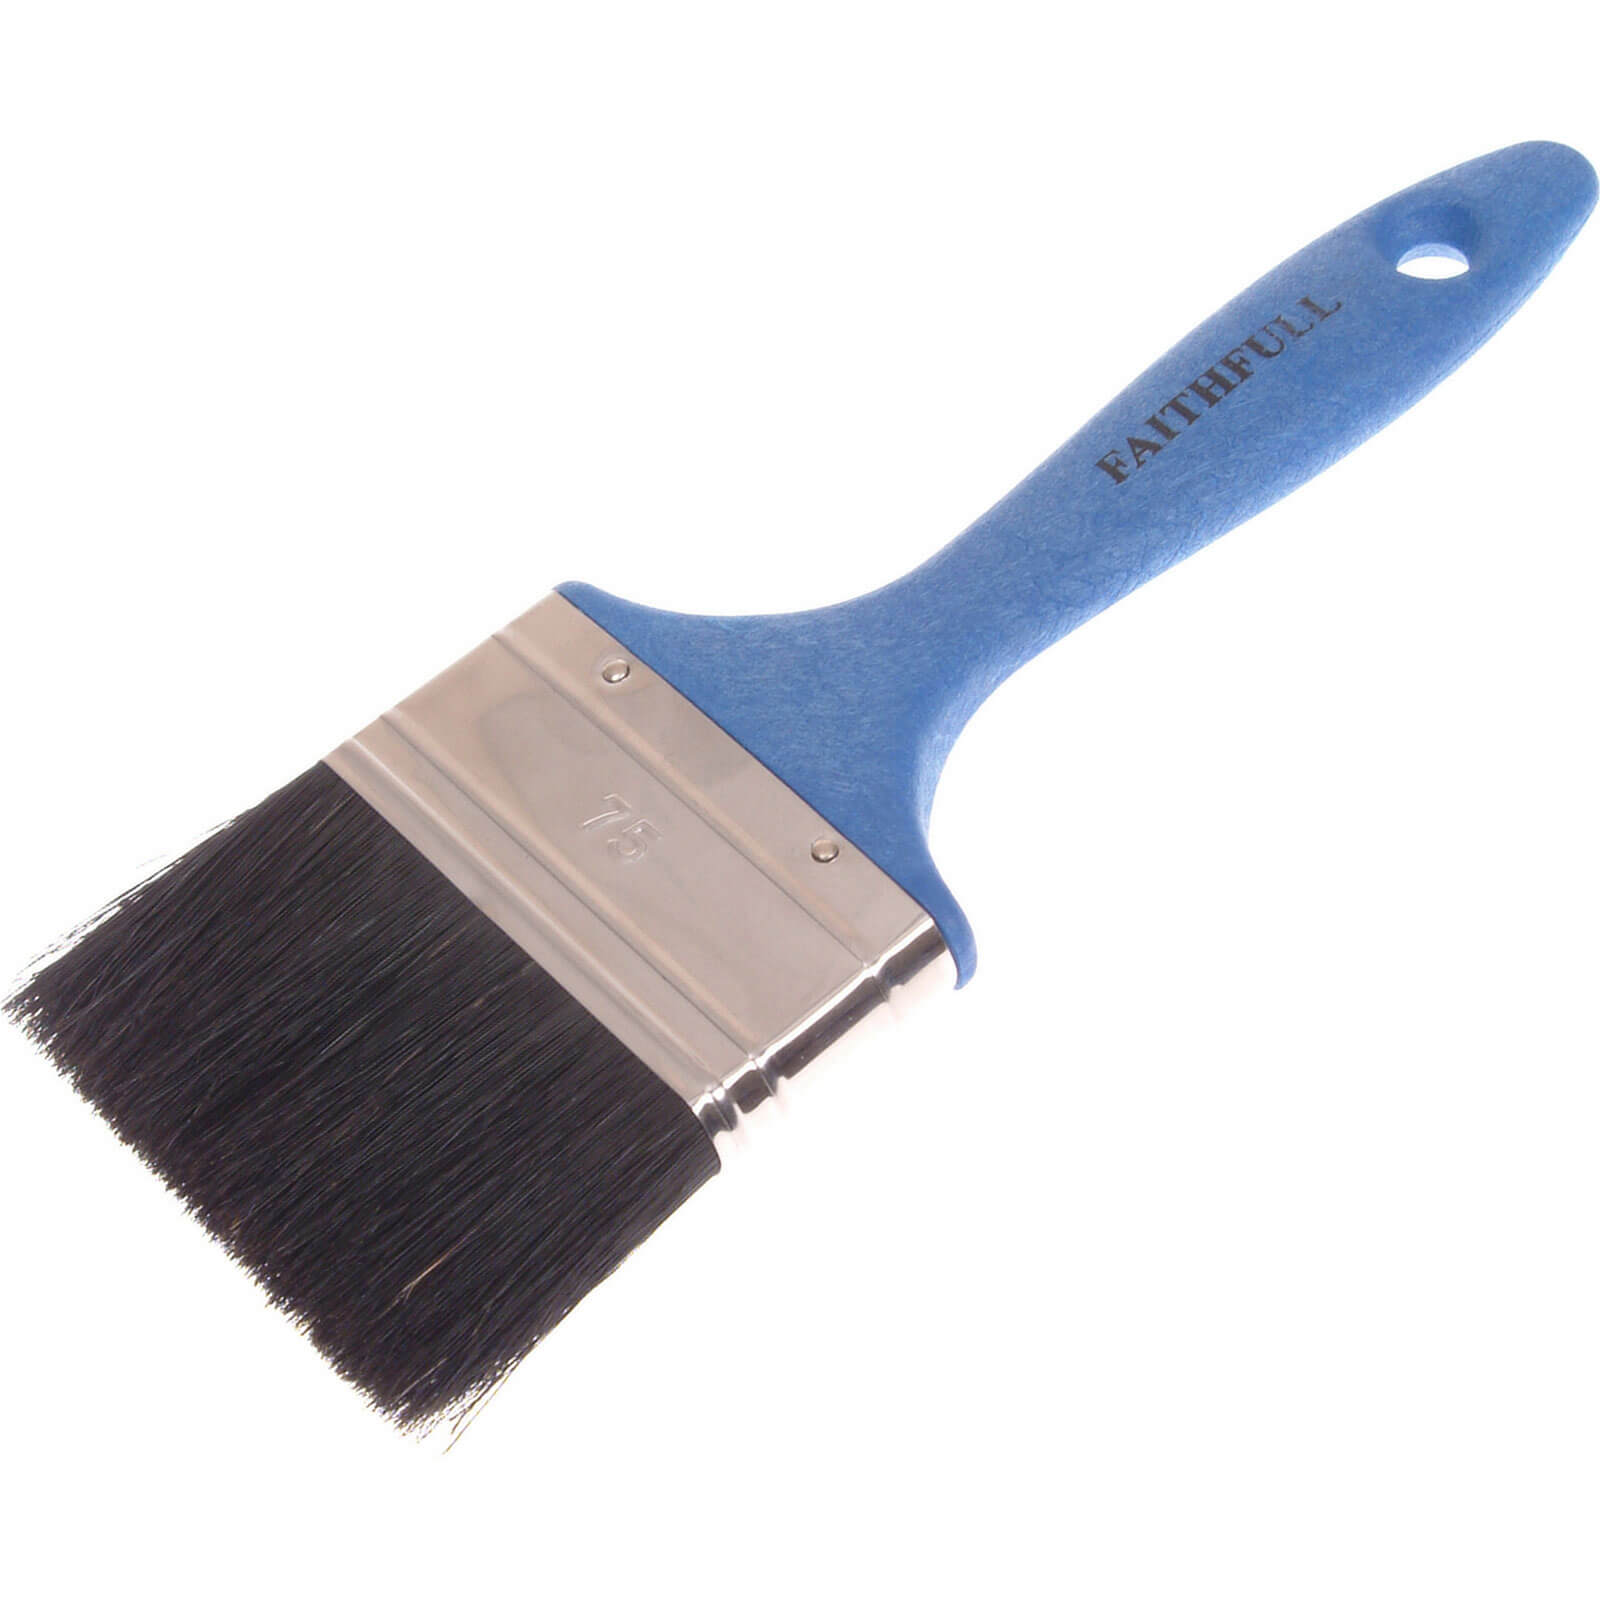 Buy Cheap Paint Brush Compare Hand Tools Prices For Best Uk Deals